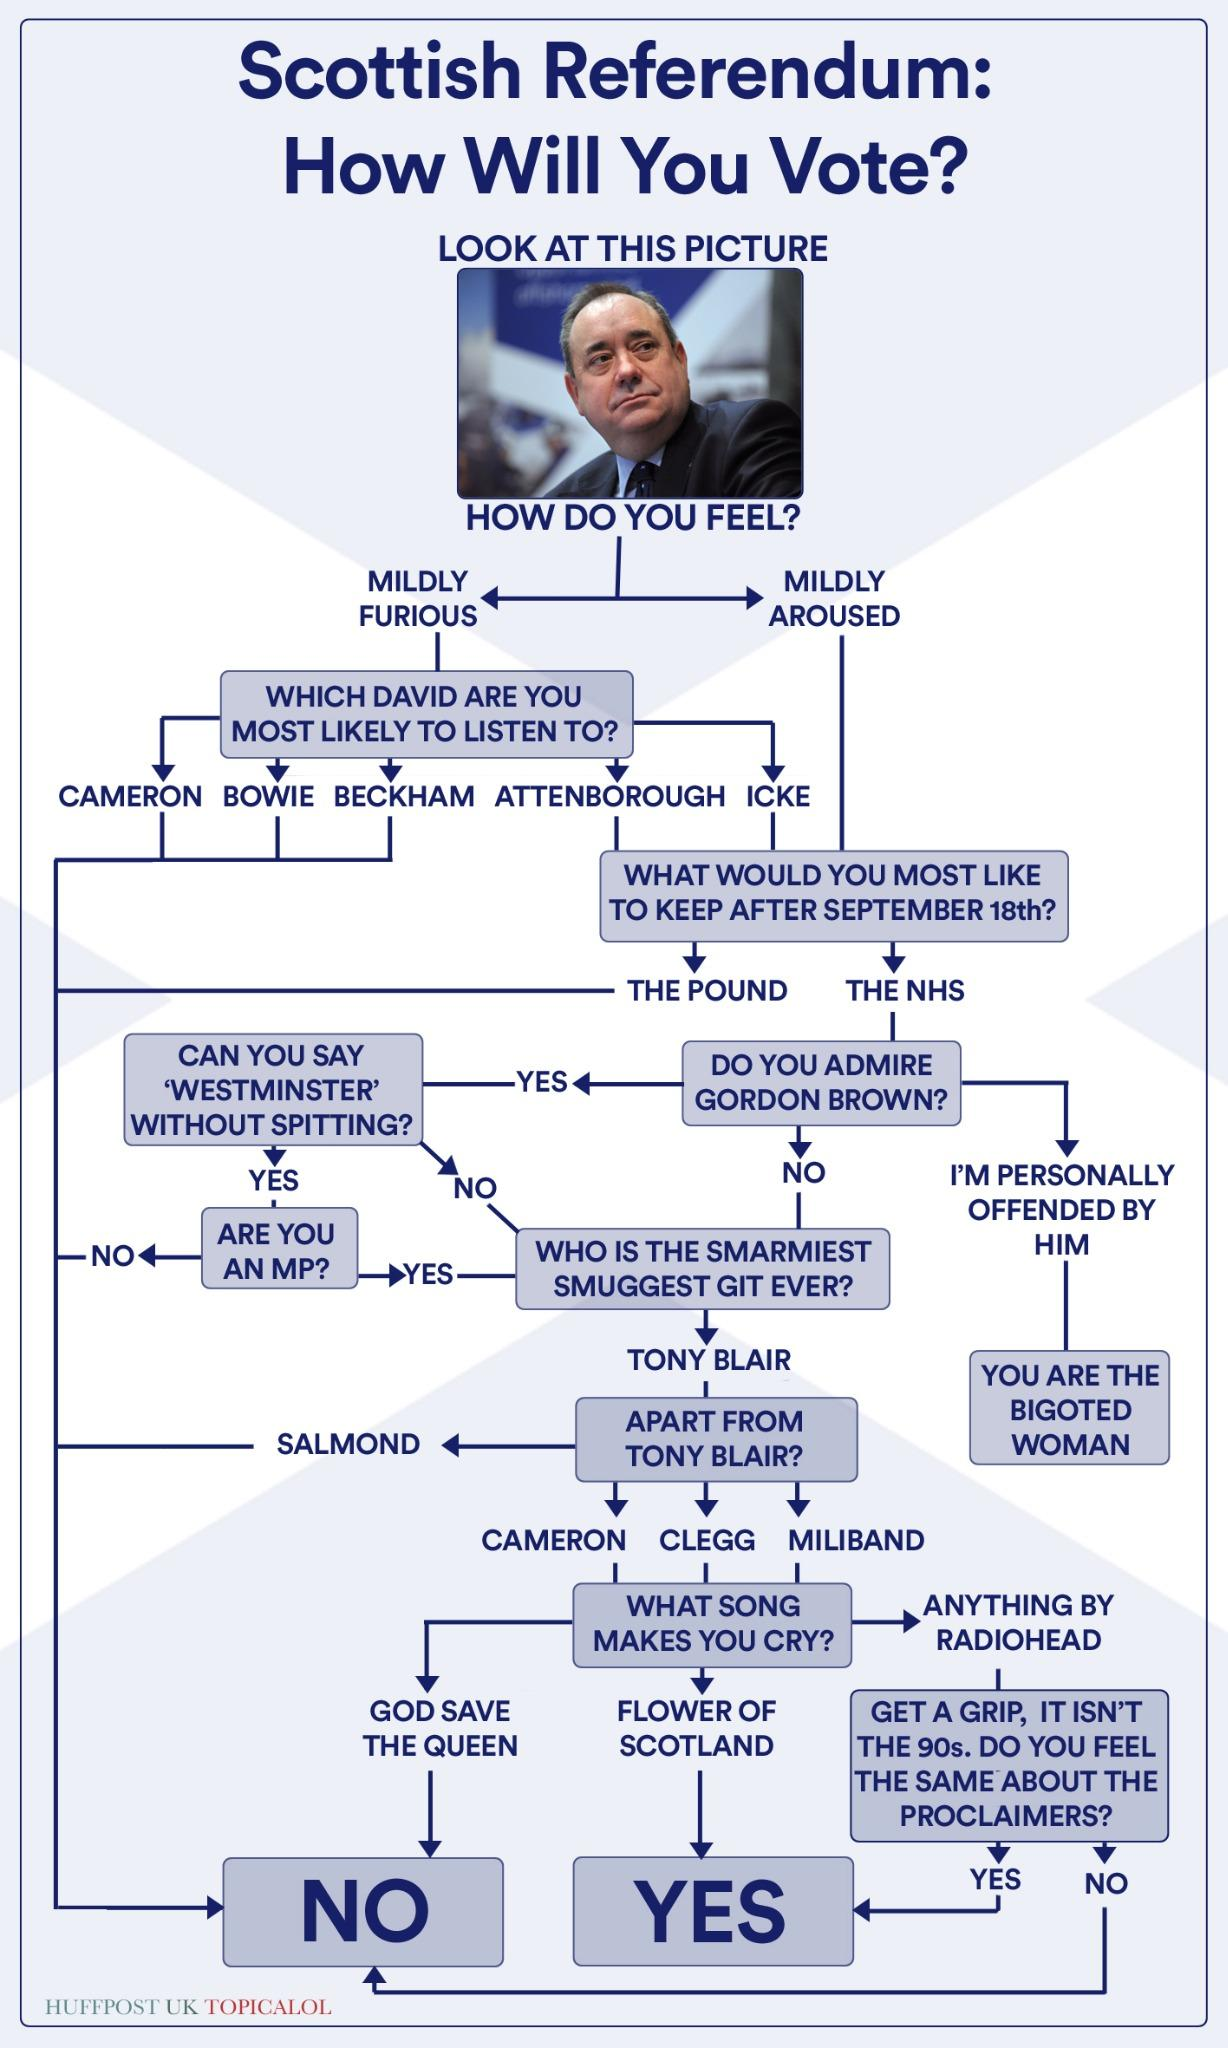 In case you missed it: the Scottish referendum voting flowchart (done for @HuffPostUKCom) http://t.co/sWn4XG5PGQ http://t.co/1A6gj5jYIi